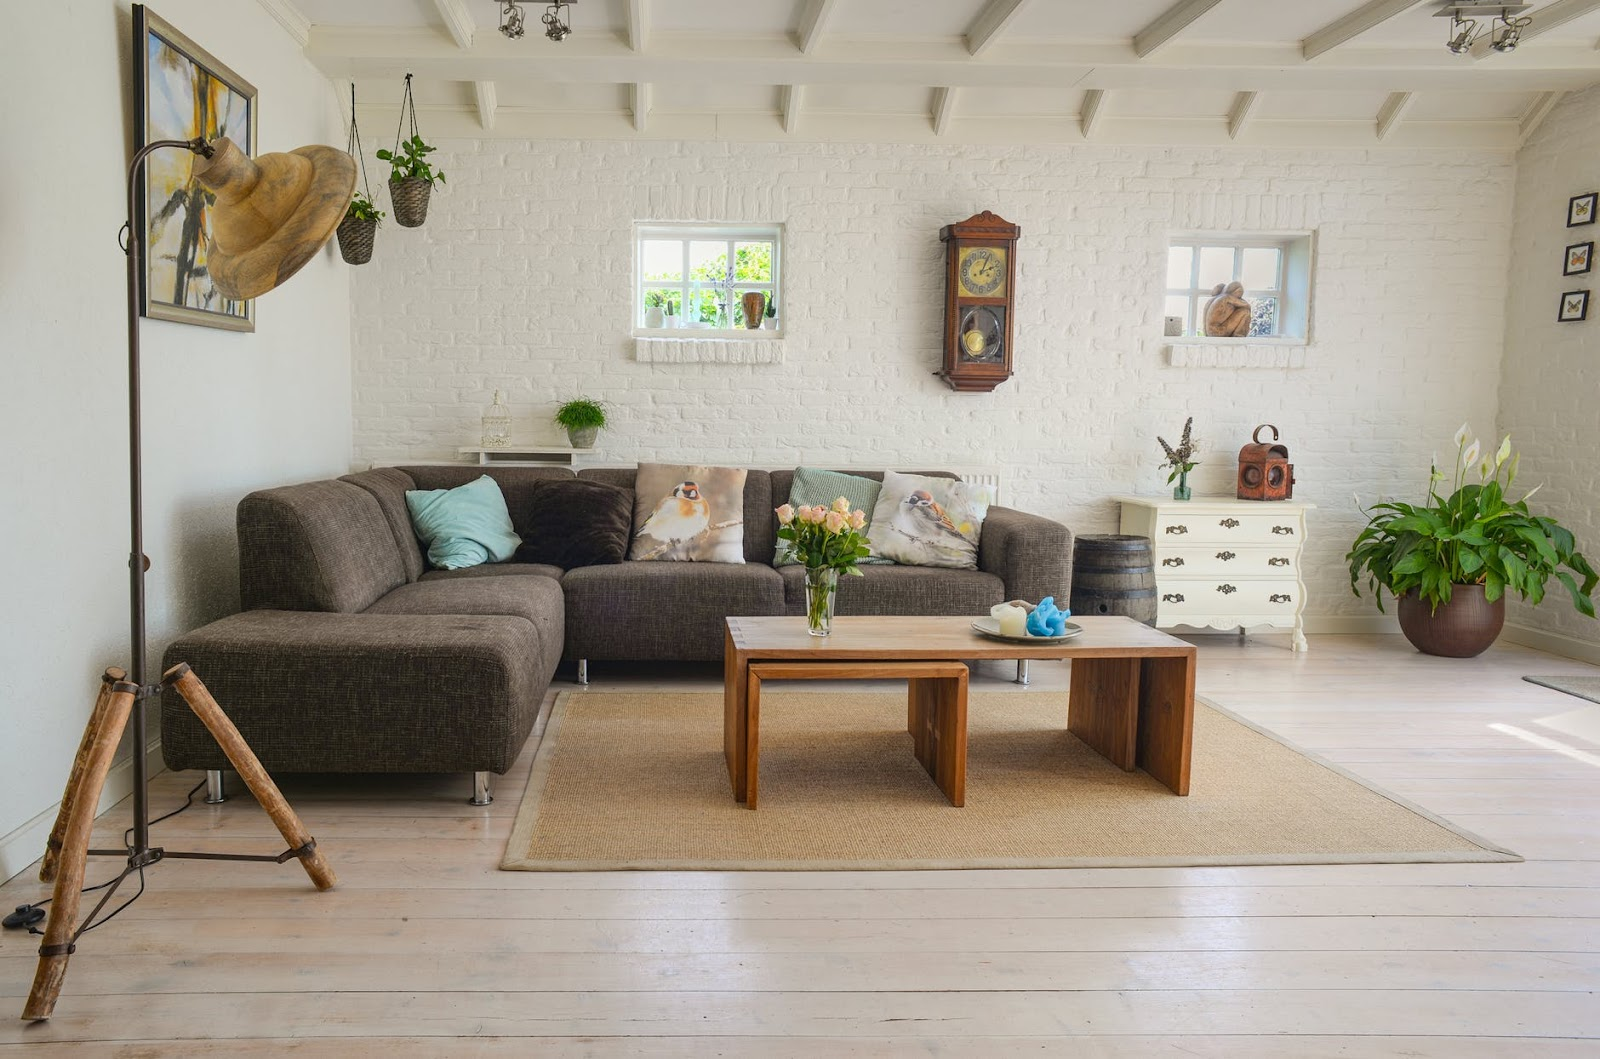 child-proofing your home - living room